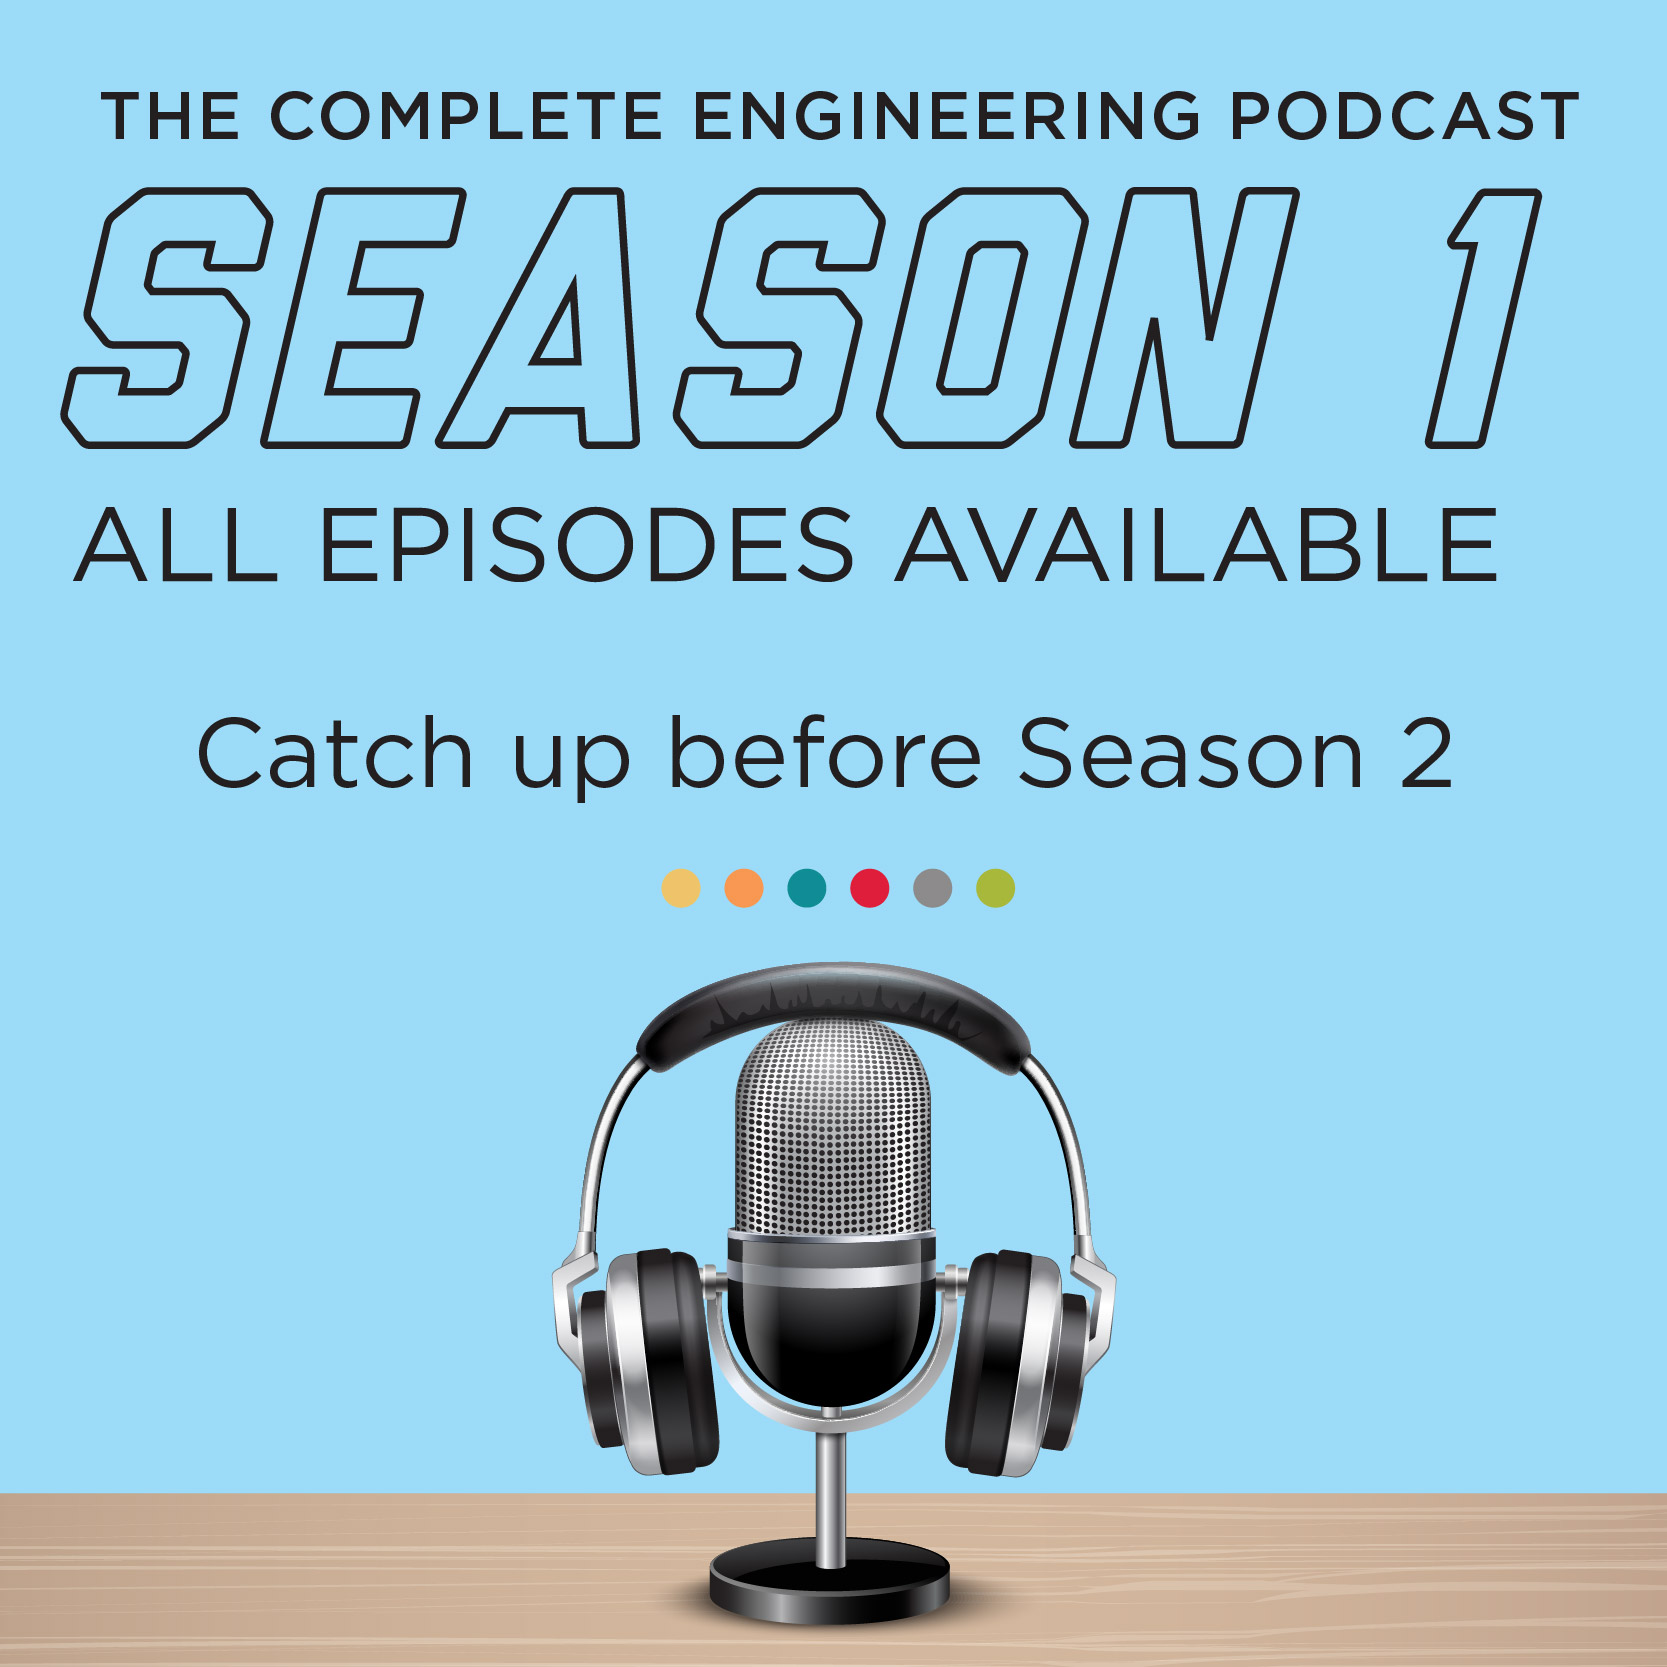 Podcast- Season 1 available now